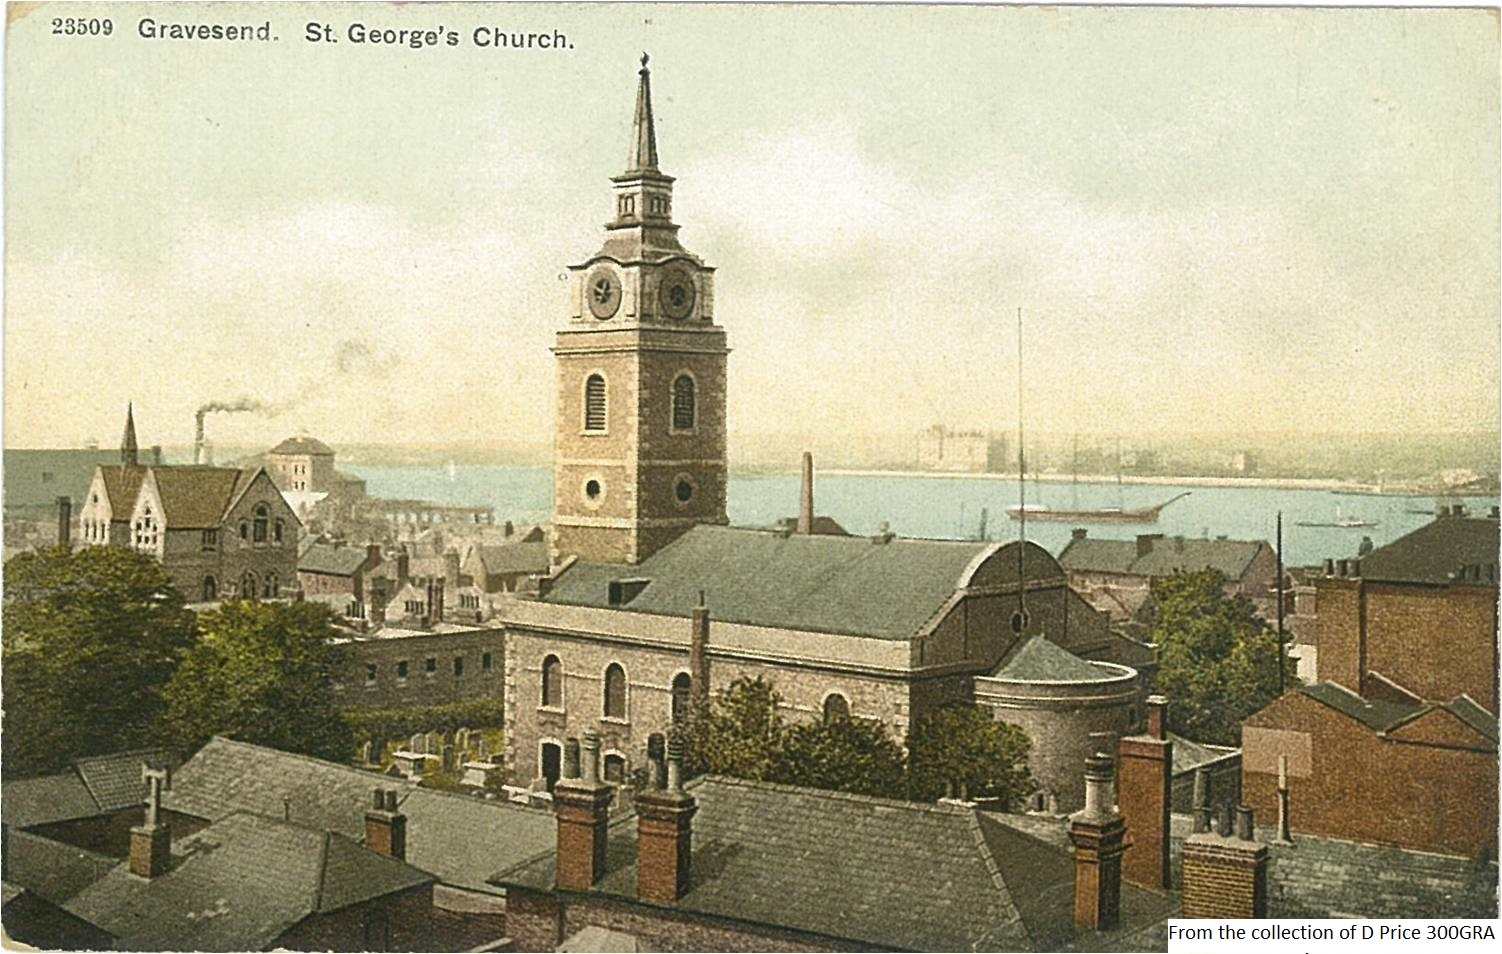 300gra-gravesend-st-georges-church